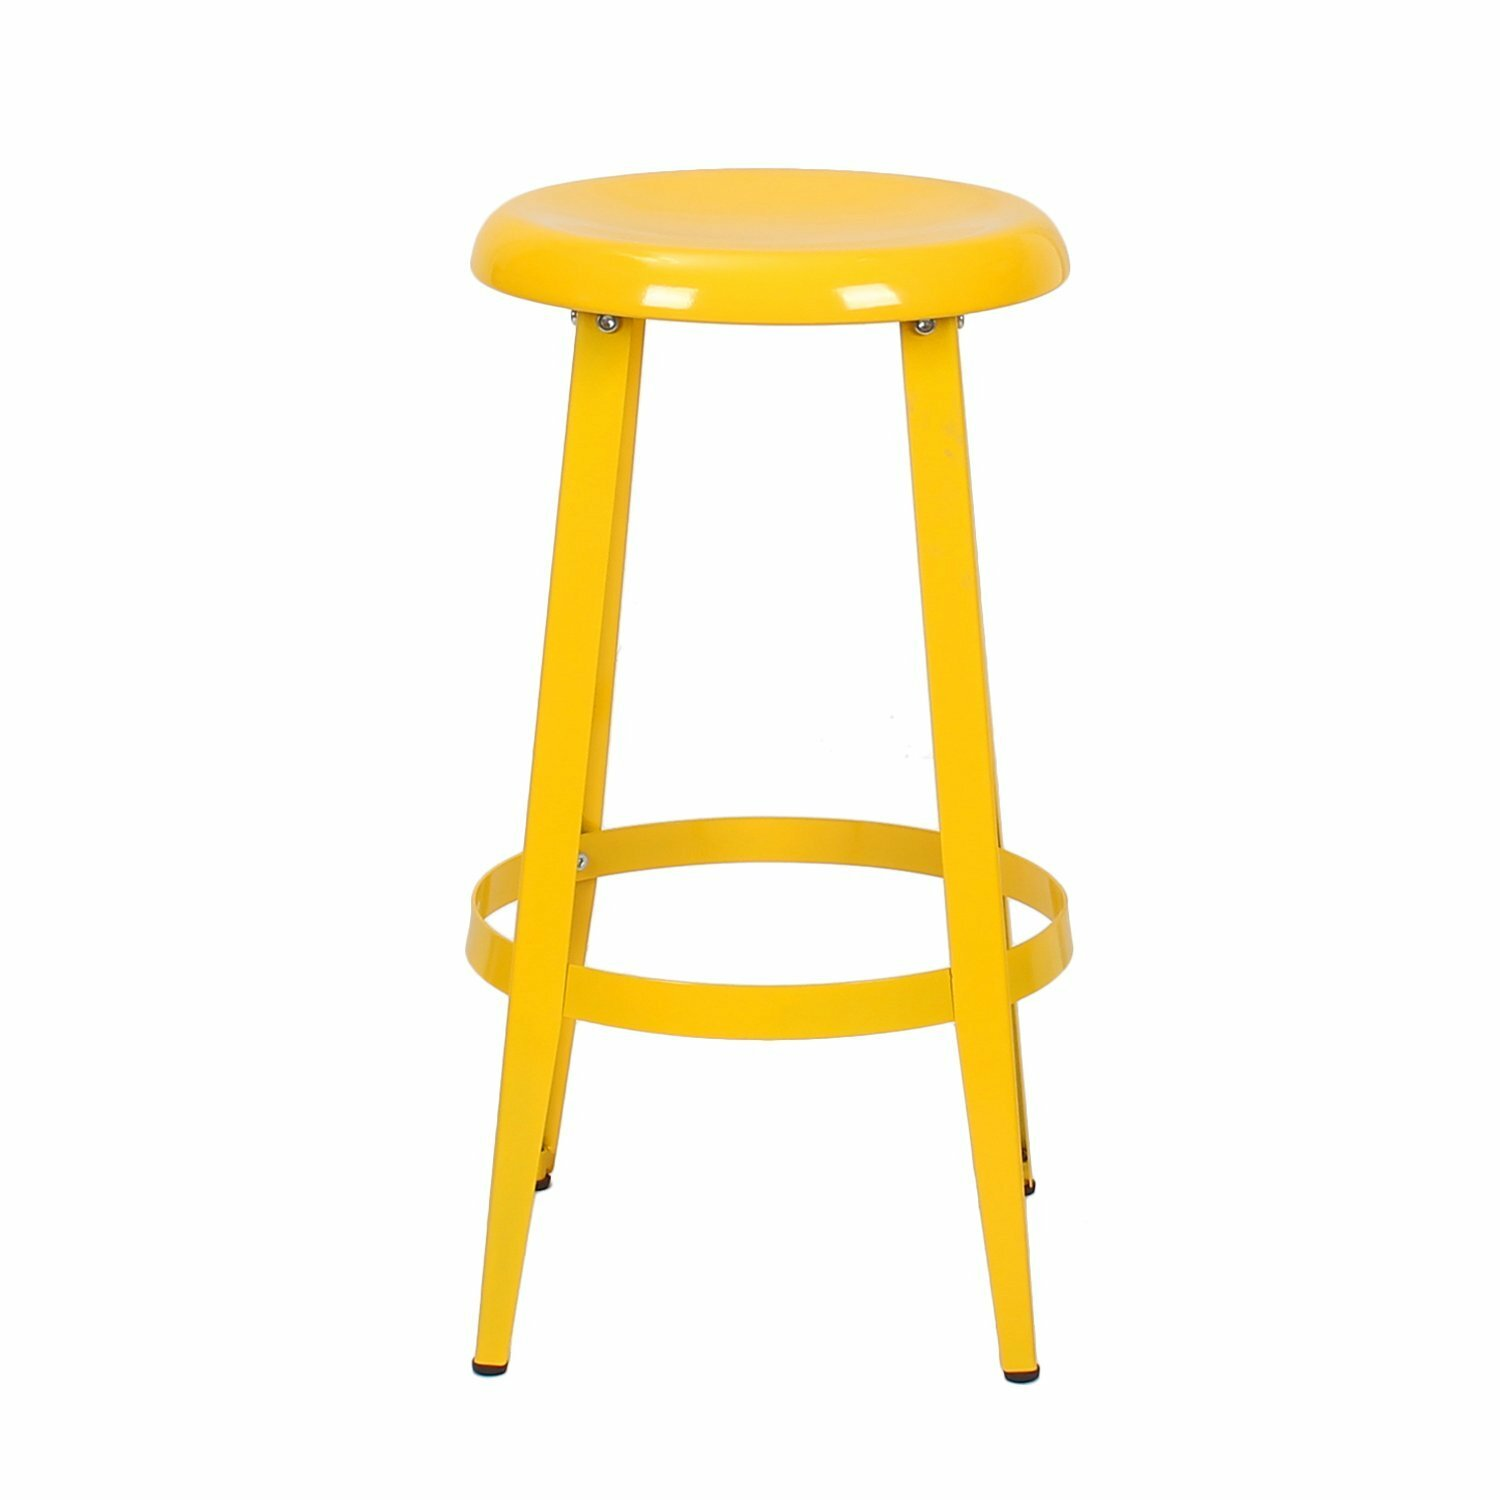 26quot Bar Stool Wayfair : Adeco Metal Stackable Round Top Backless 26 Inch High Stools CH0226 from www.wayfair.com size 1500 x 1500 jpeg 82kB